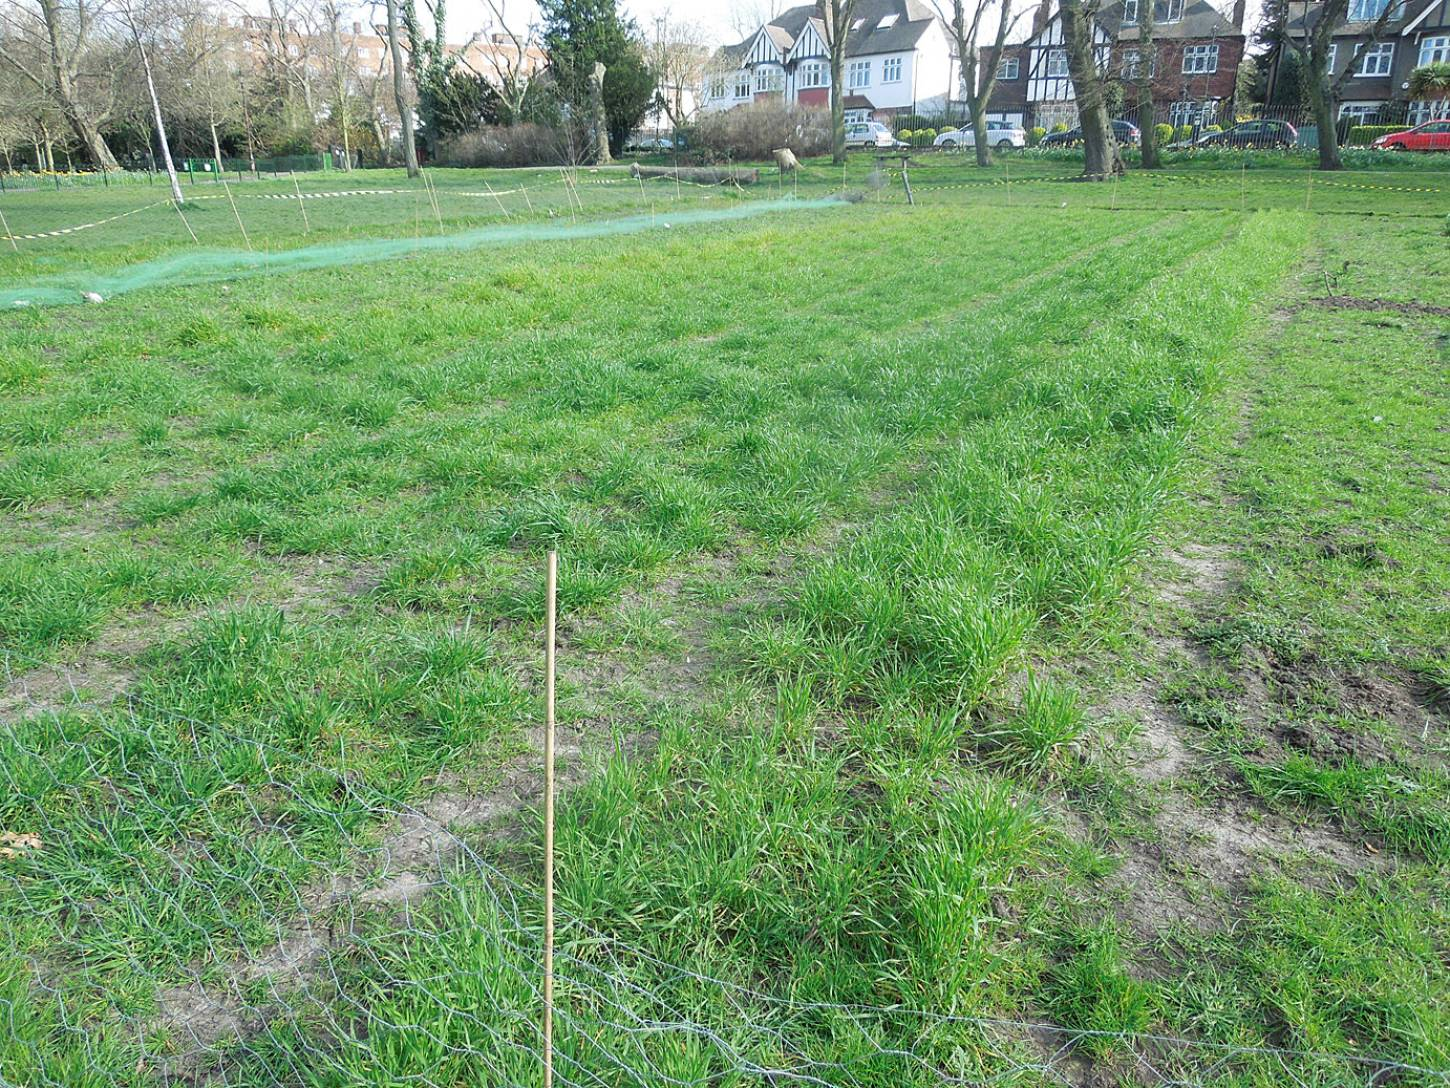 Ruskin Park wheat trials Spring #1 - 4:14pm&nbsp;5<sup>th</sup>&nbsp;Apr.&nbsp;'16